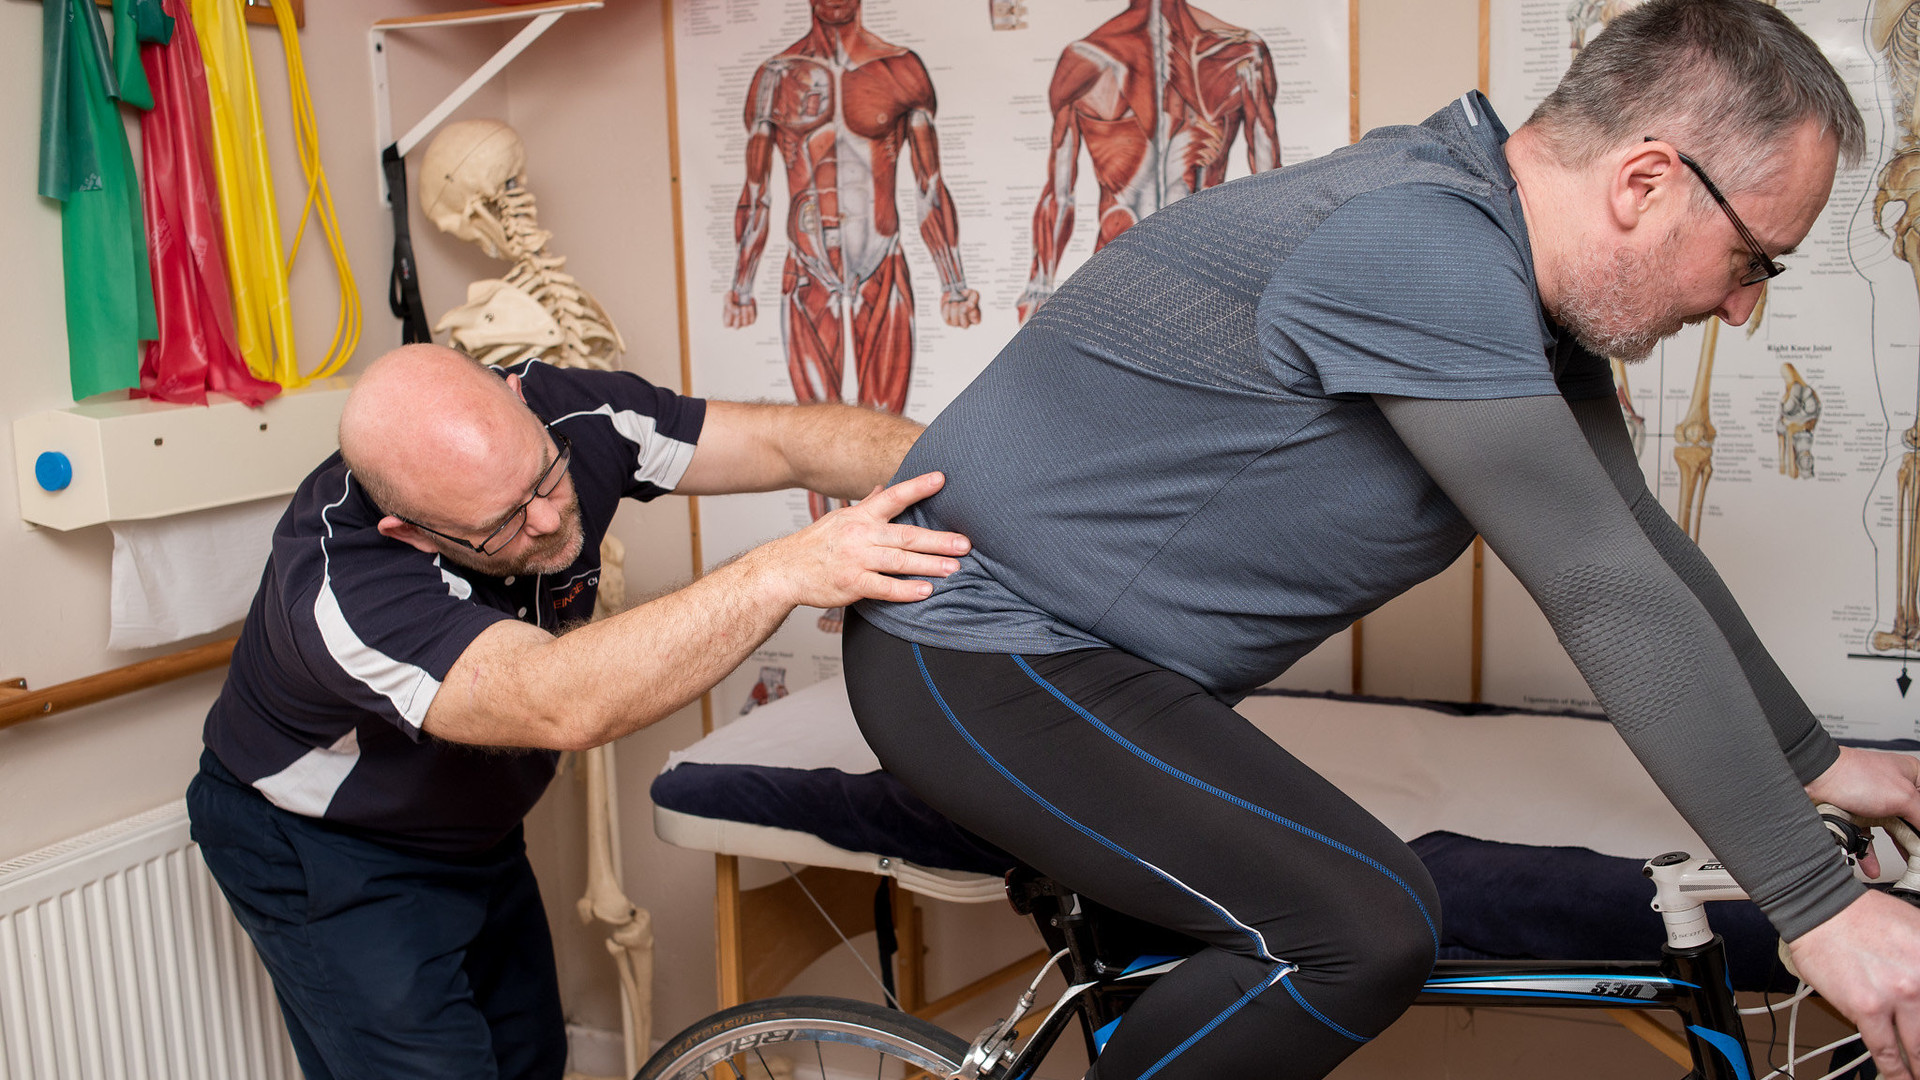 Cycling Analysis at The Reinge Clinic Kenilworth, Portishead.